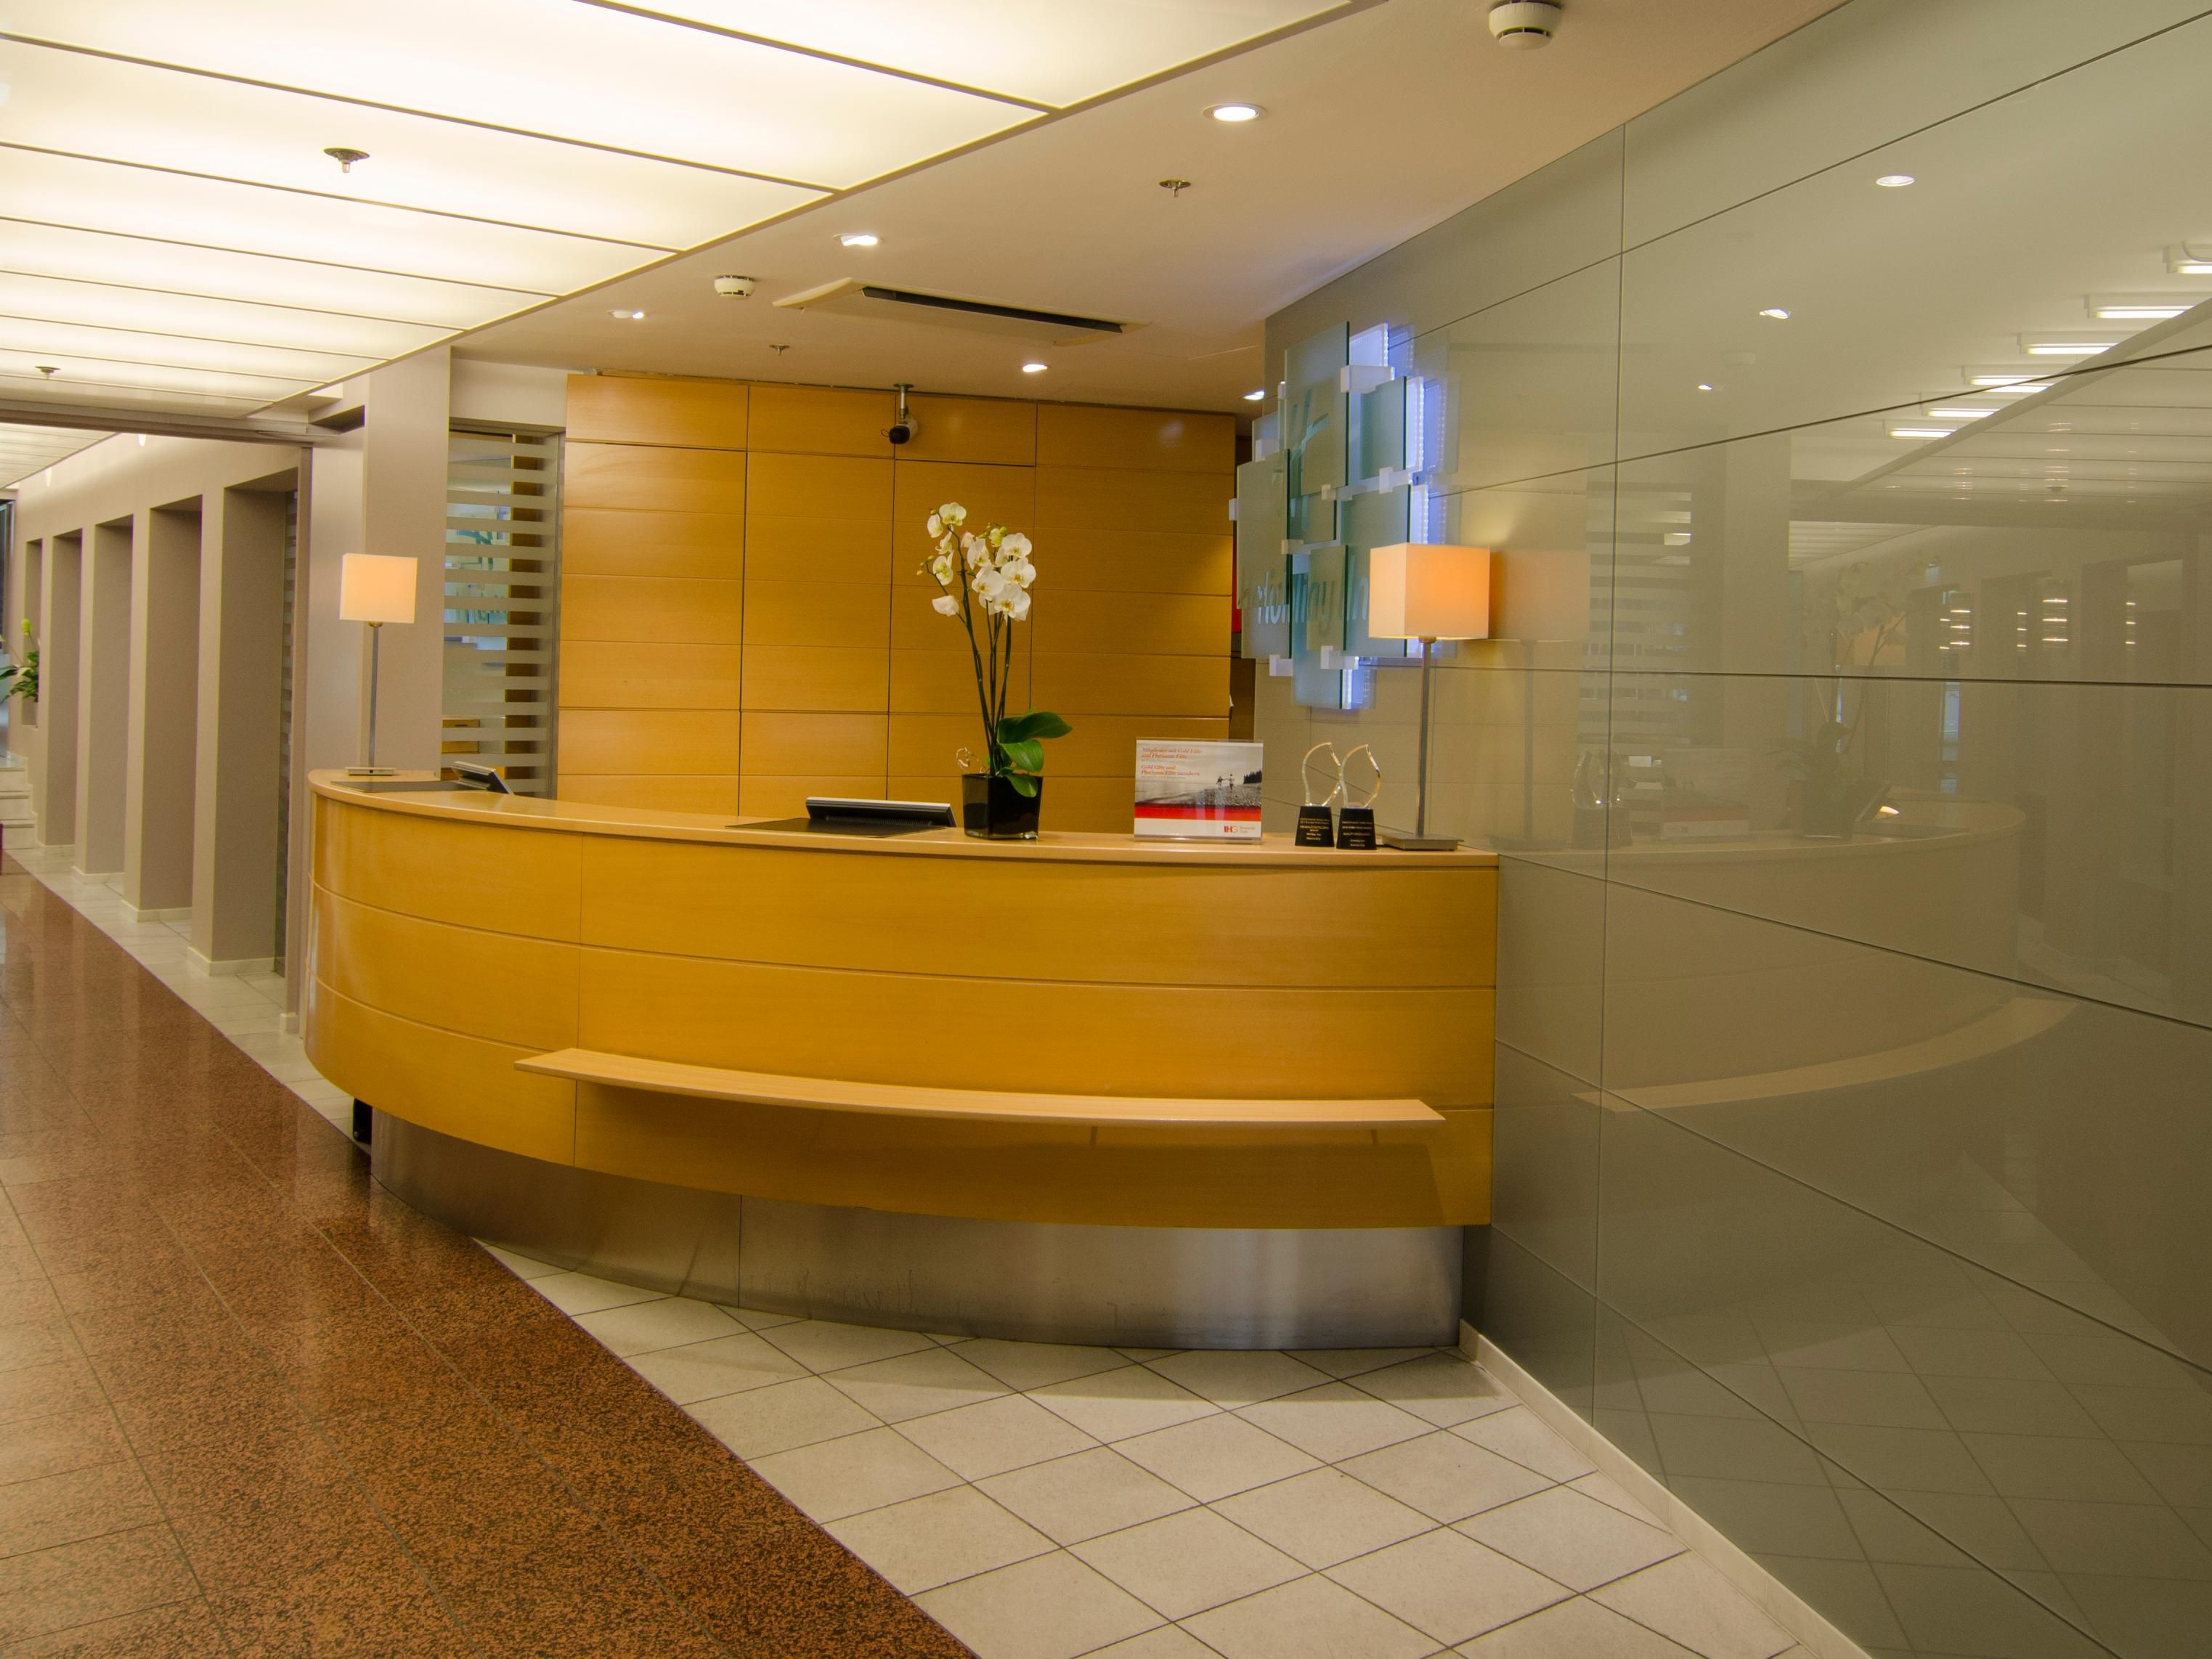 Entrance with front desk